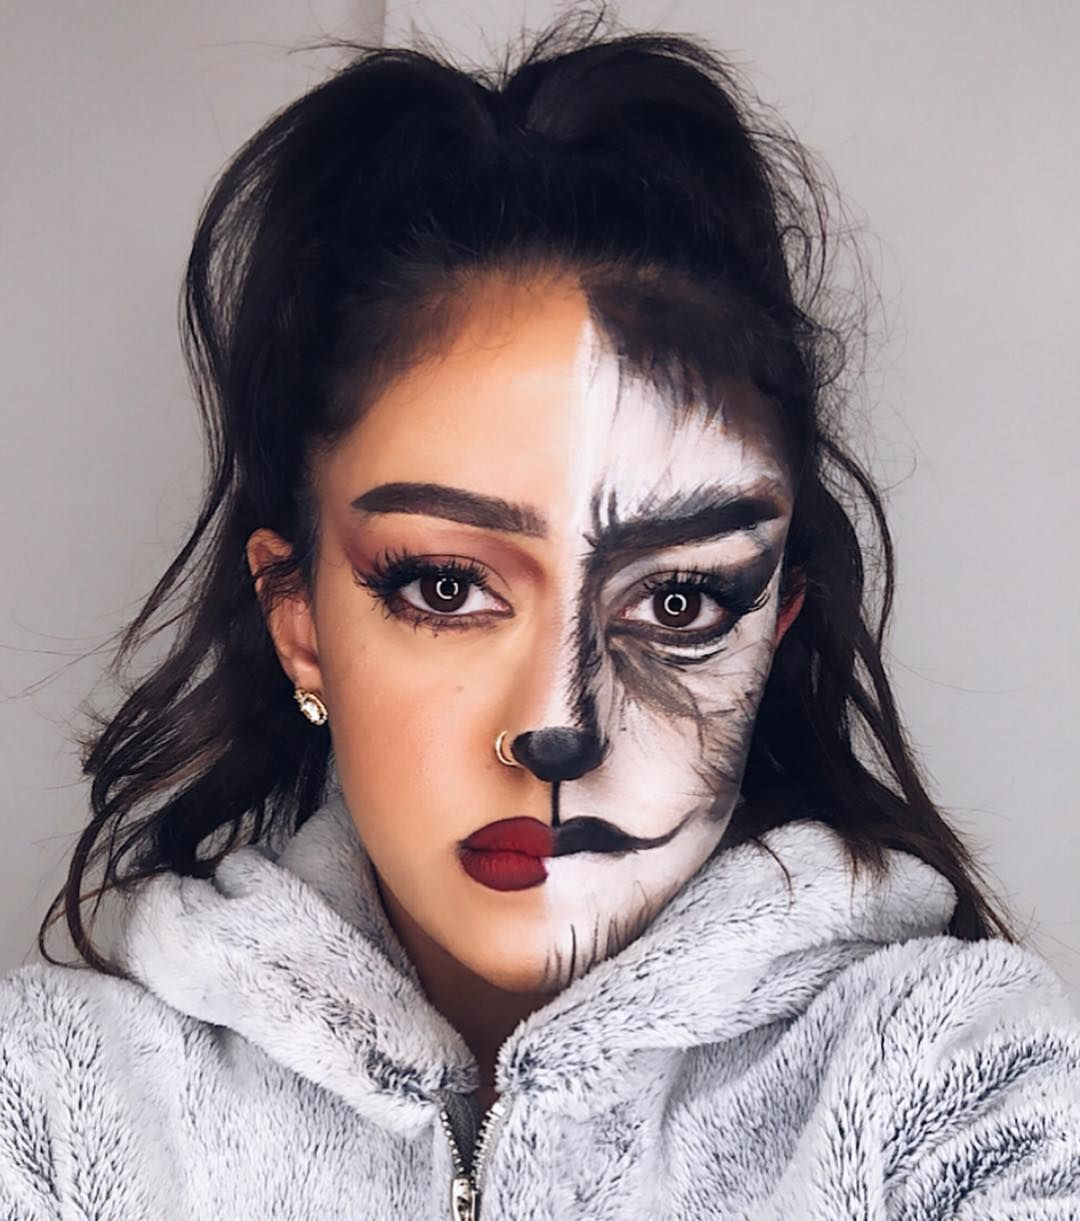 the Halloween Costume — These HalfFace Makeup